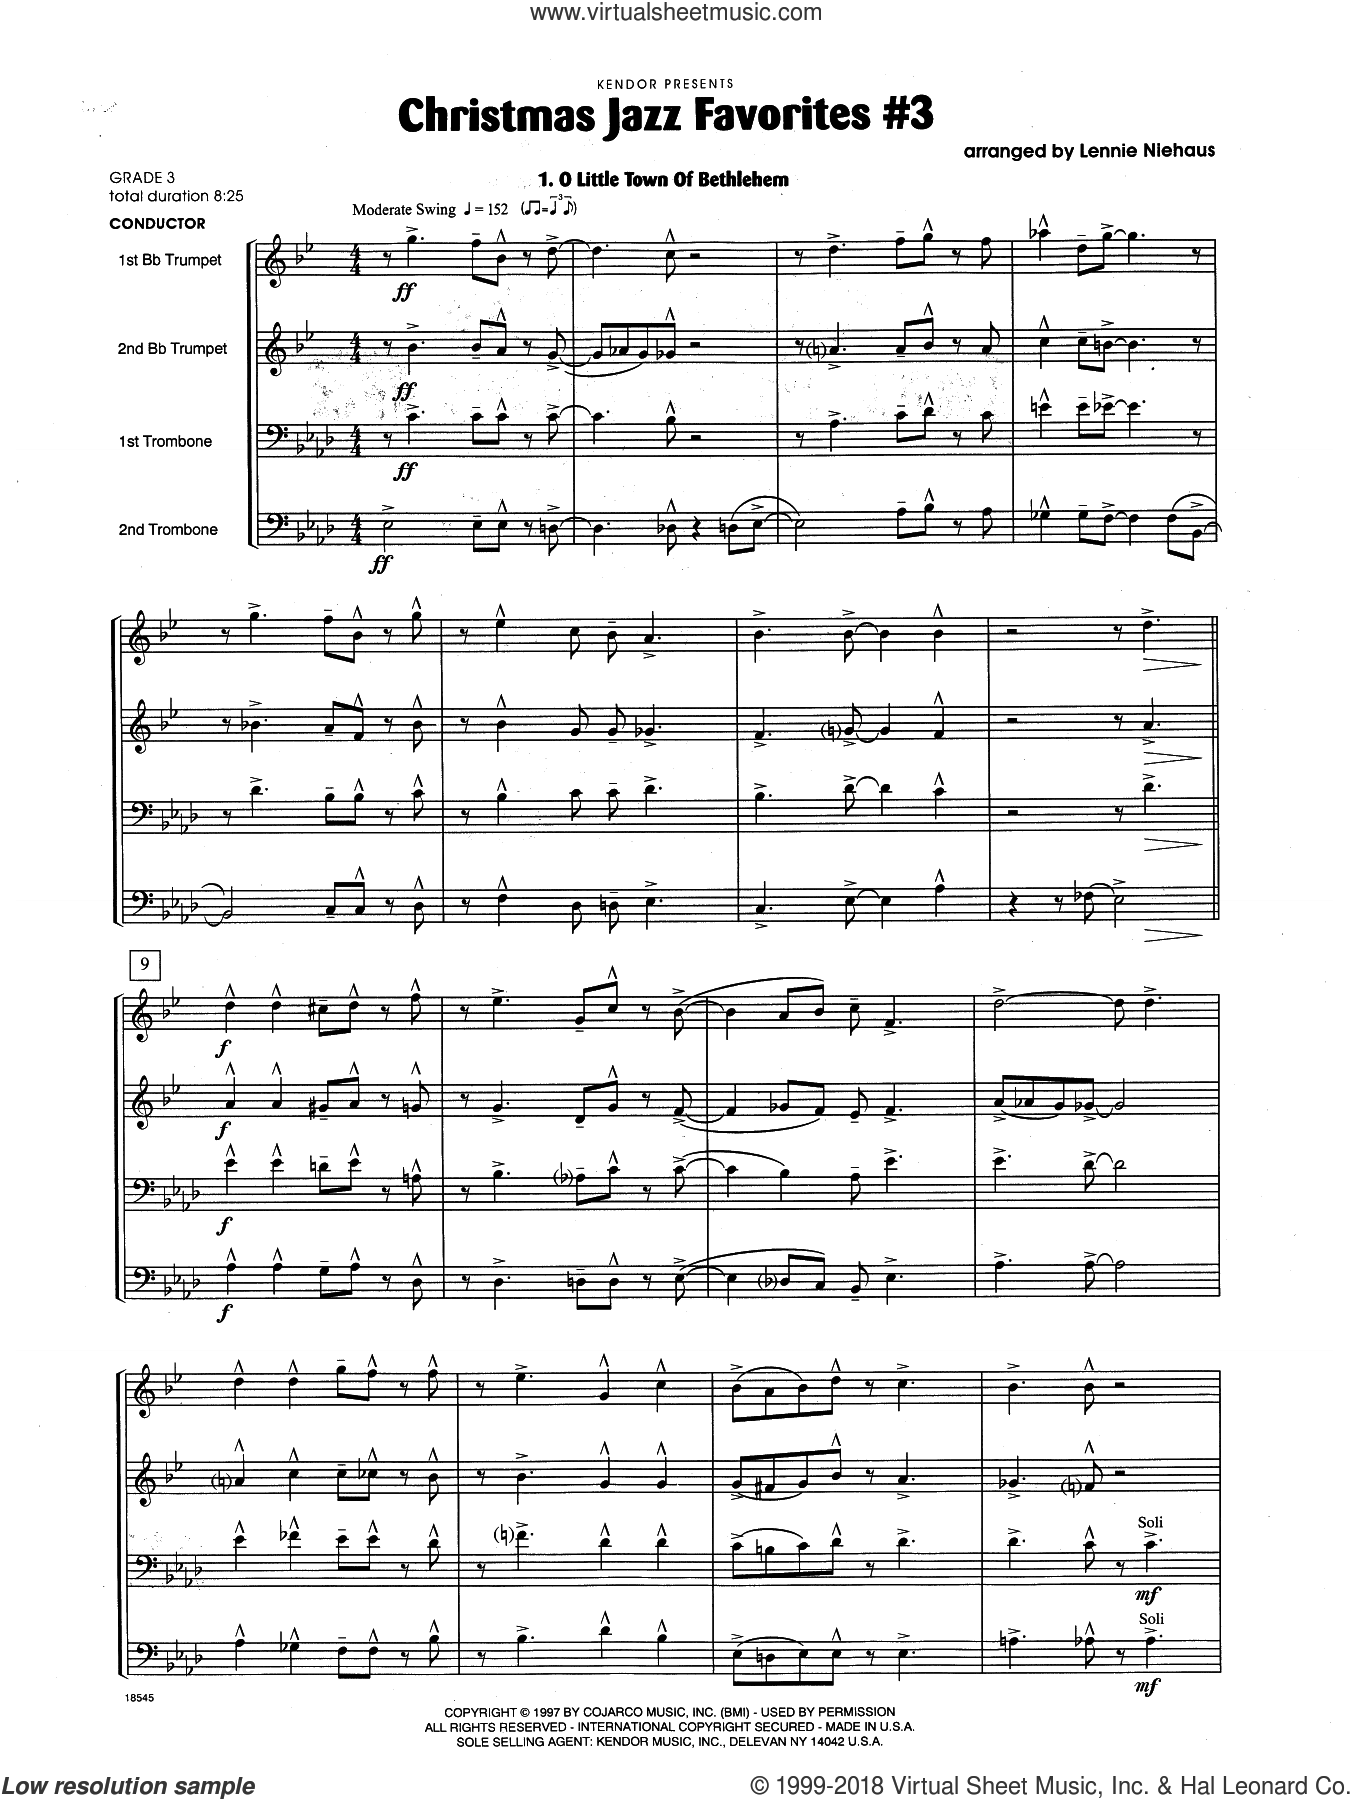 Christmas Jazz Favorites #3 (COMPLETE) sheet music for brass quartet by Lennie Niehaus, intermediate skill level